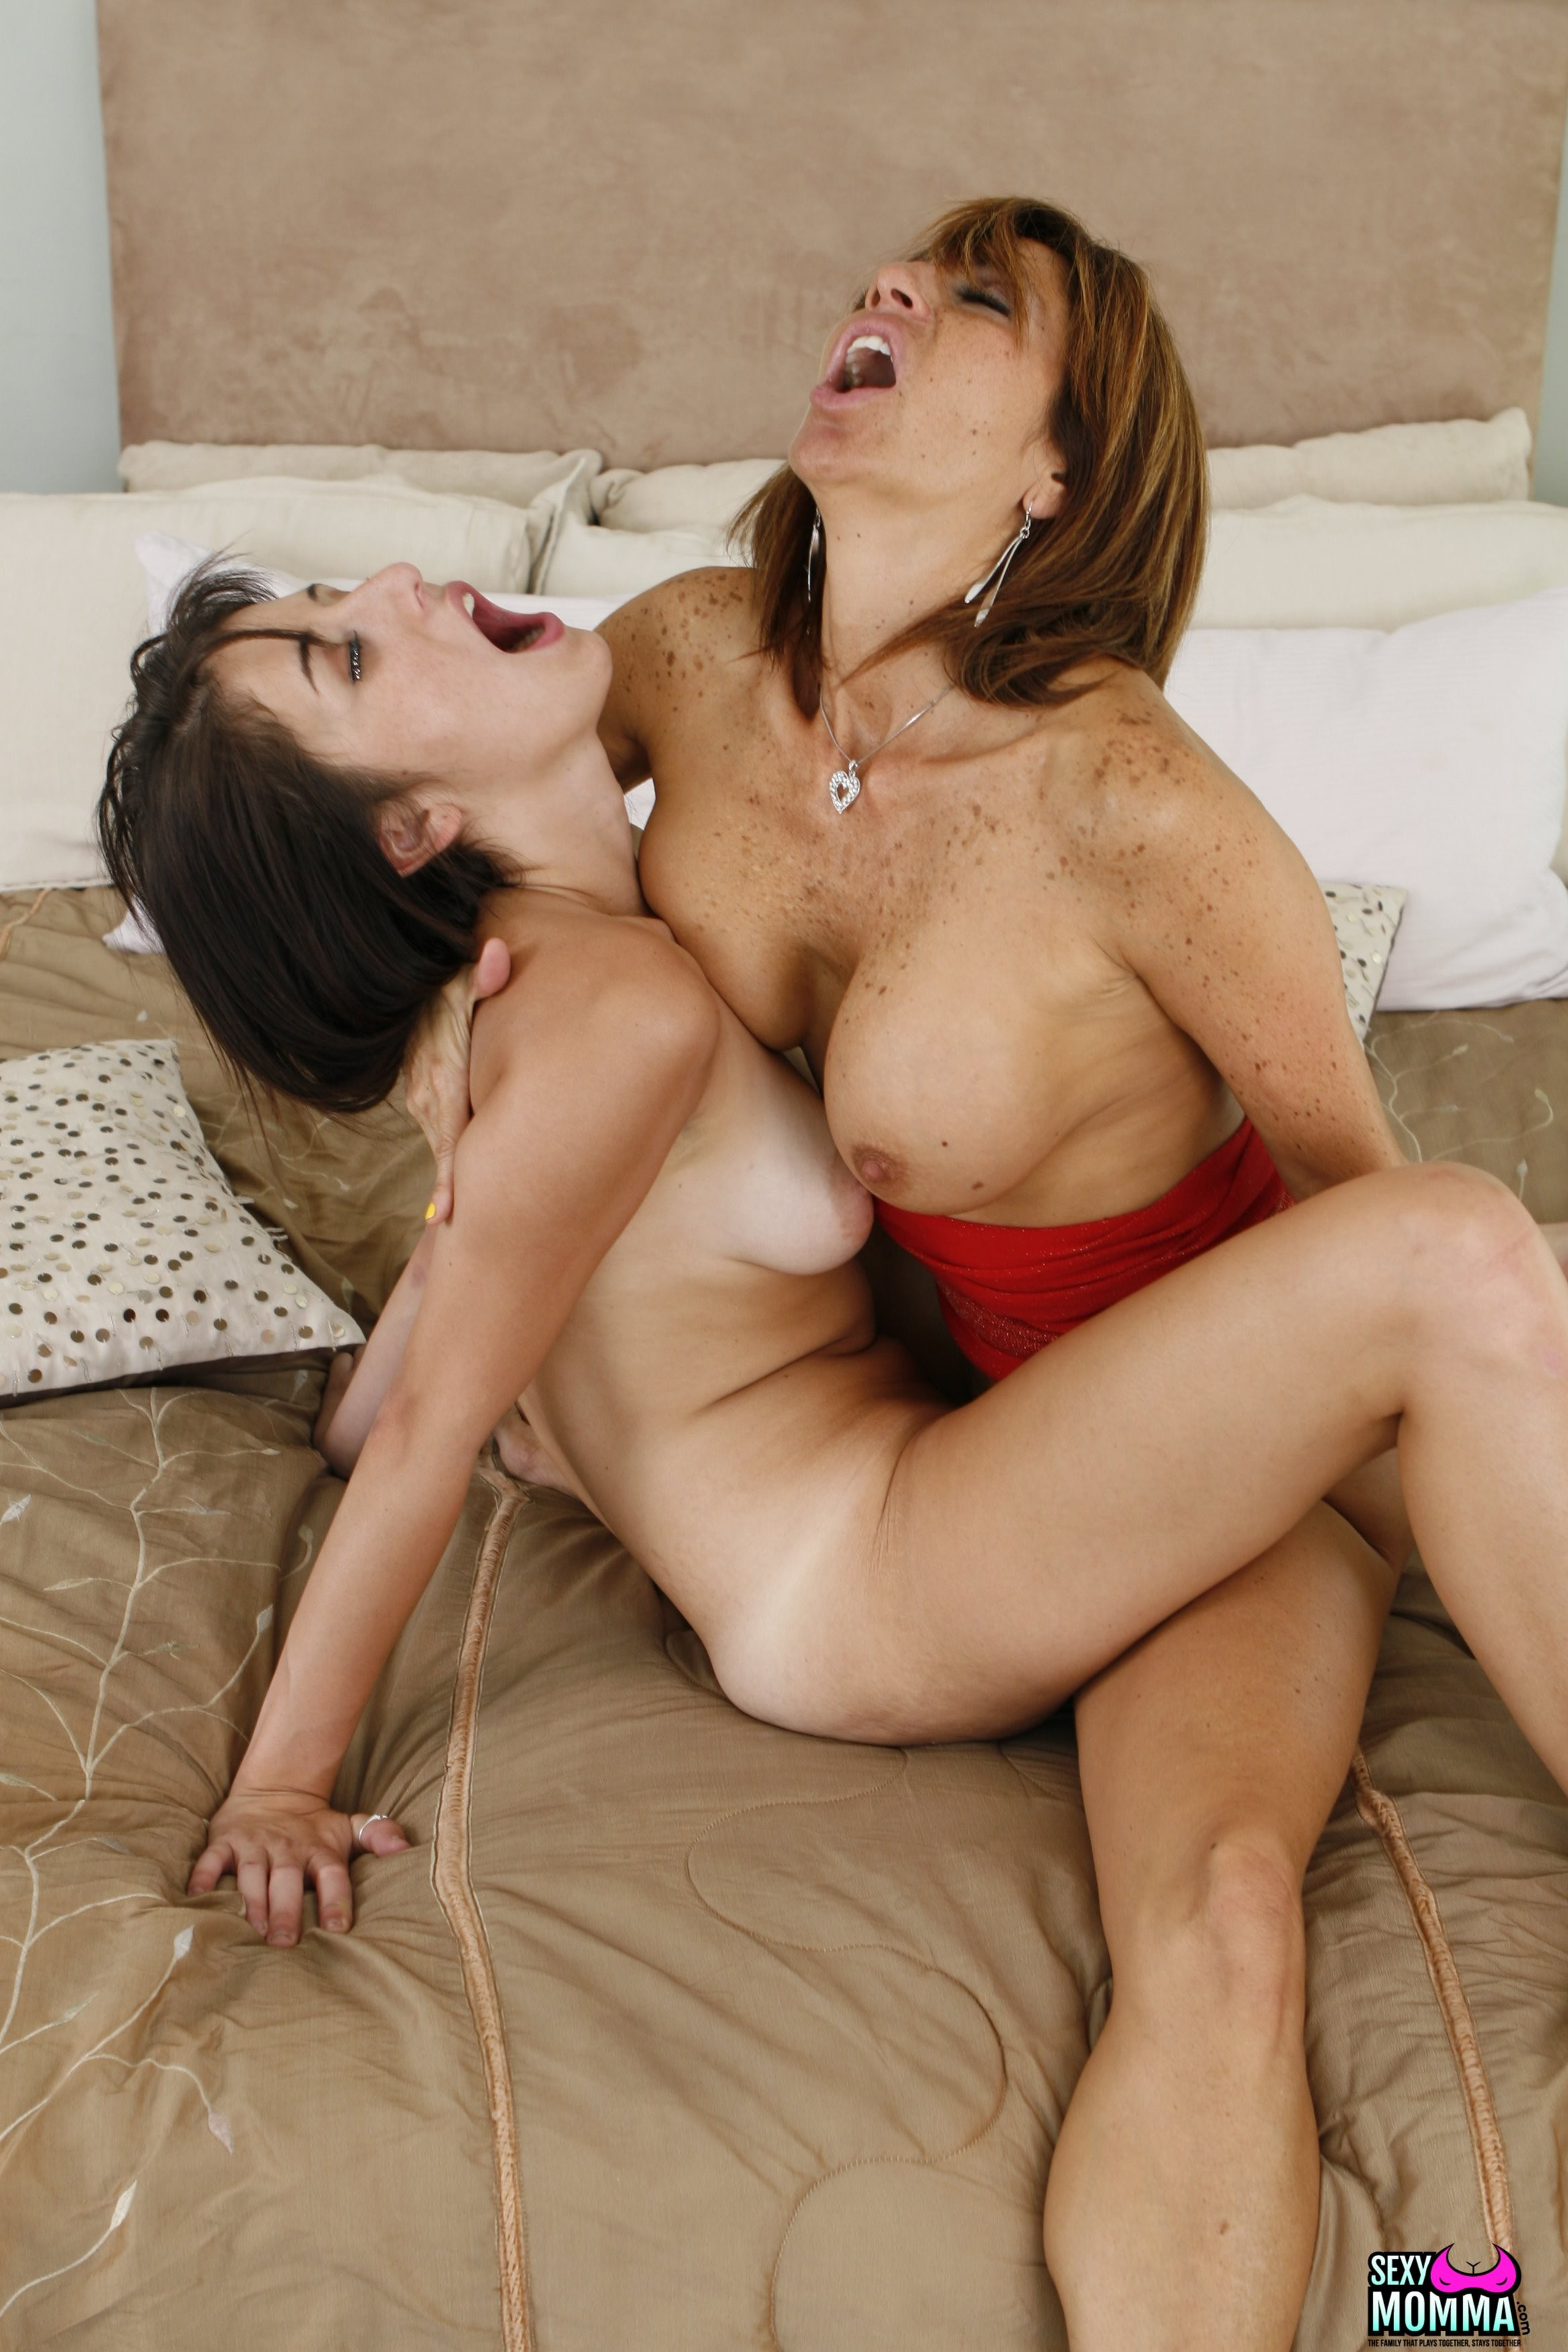 Step Mommy, Tera Holiday, is trying to get along with her step daughter but nothing seems to be working.